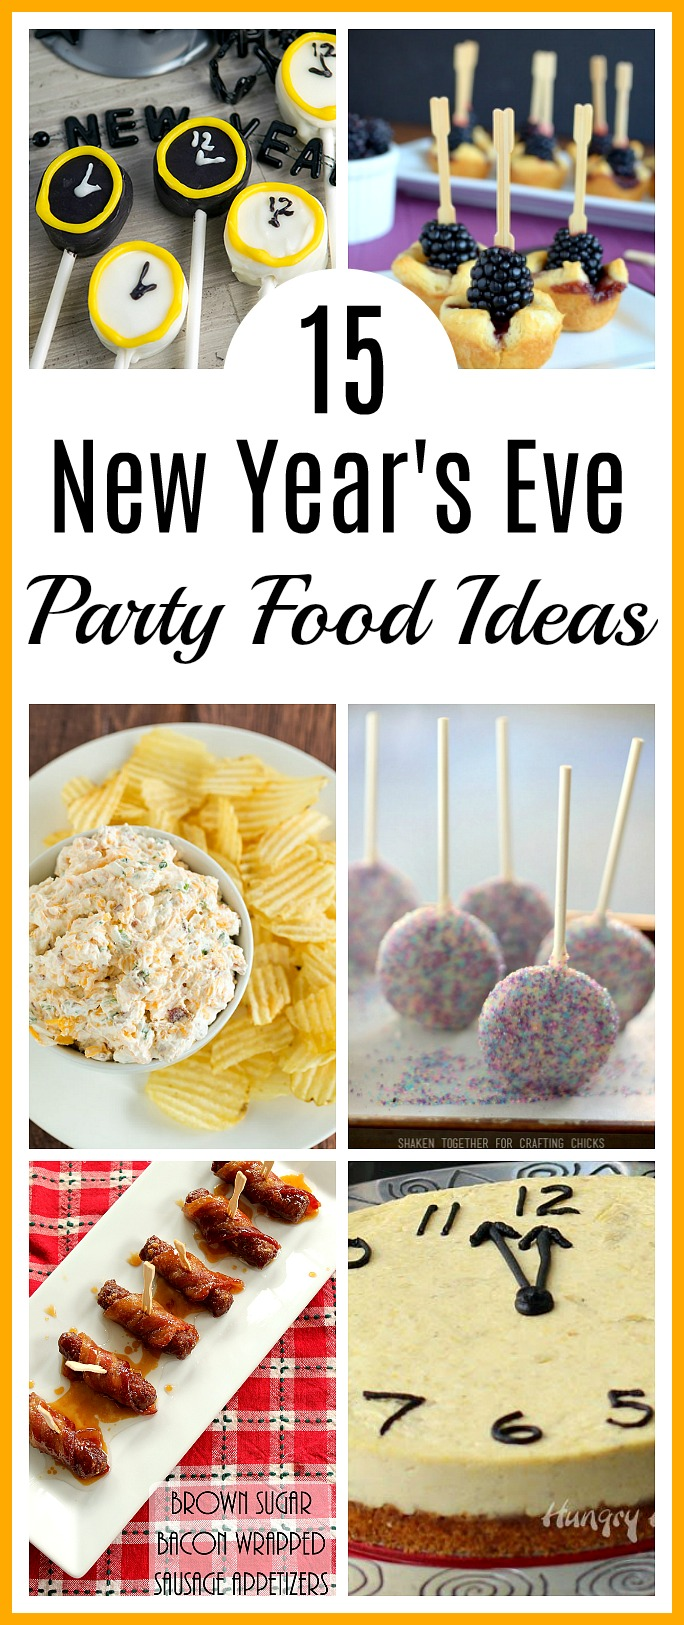 15 New Year's Eve Party Food Ideas